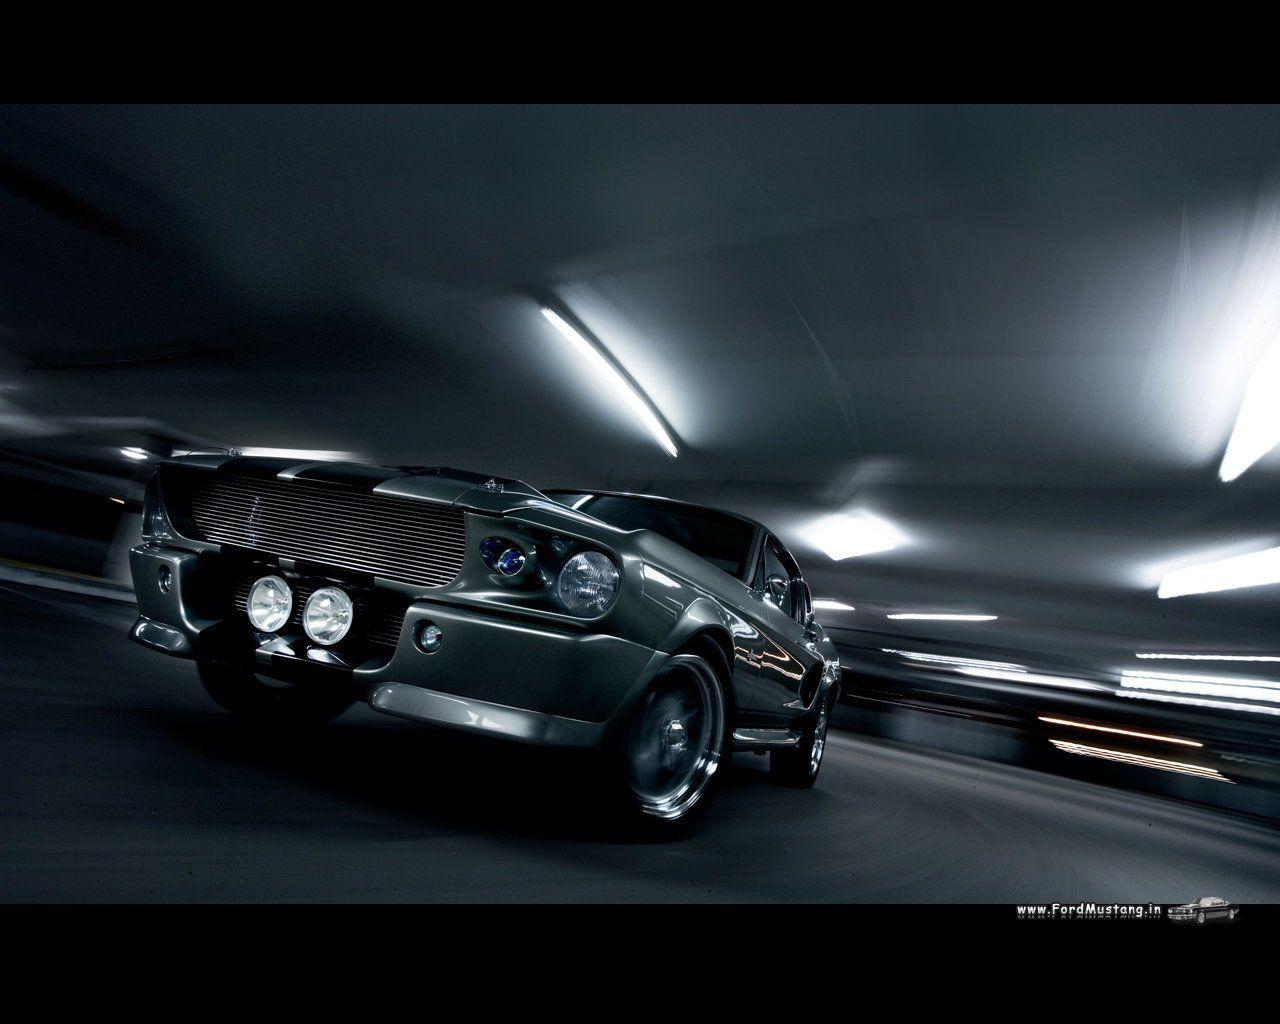 1967 Shelby Gt500 Eleanor >> 1967 Shelby GT500 Wallpapers - Wallpaper Cave